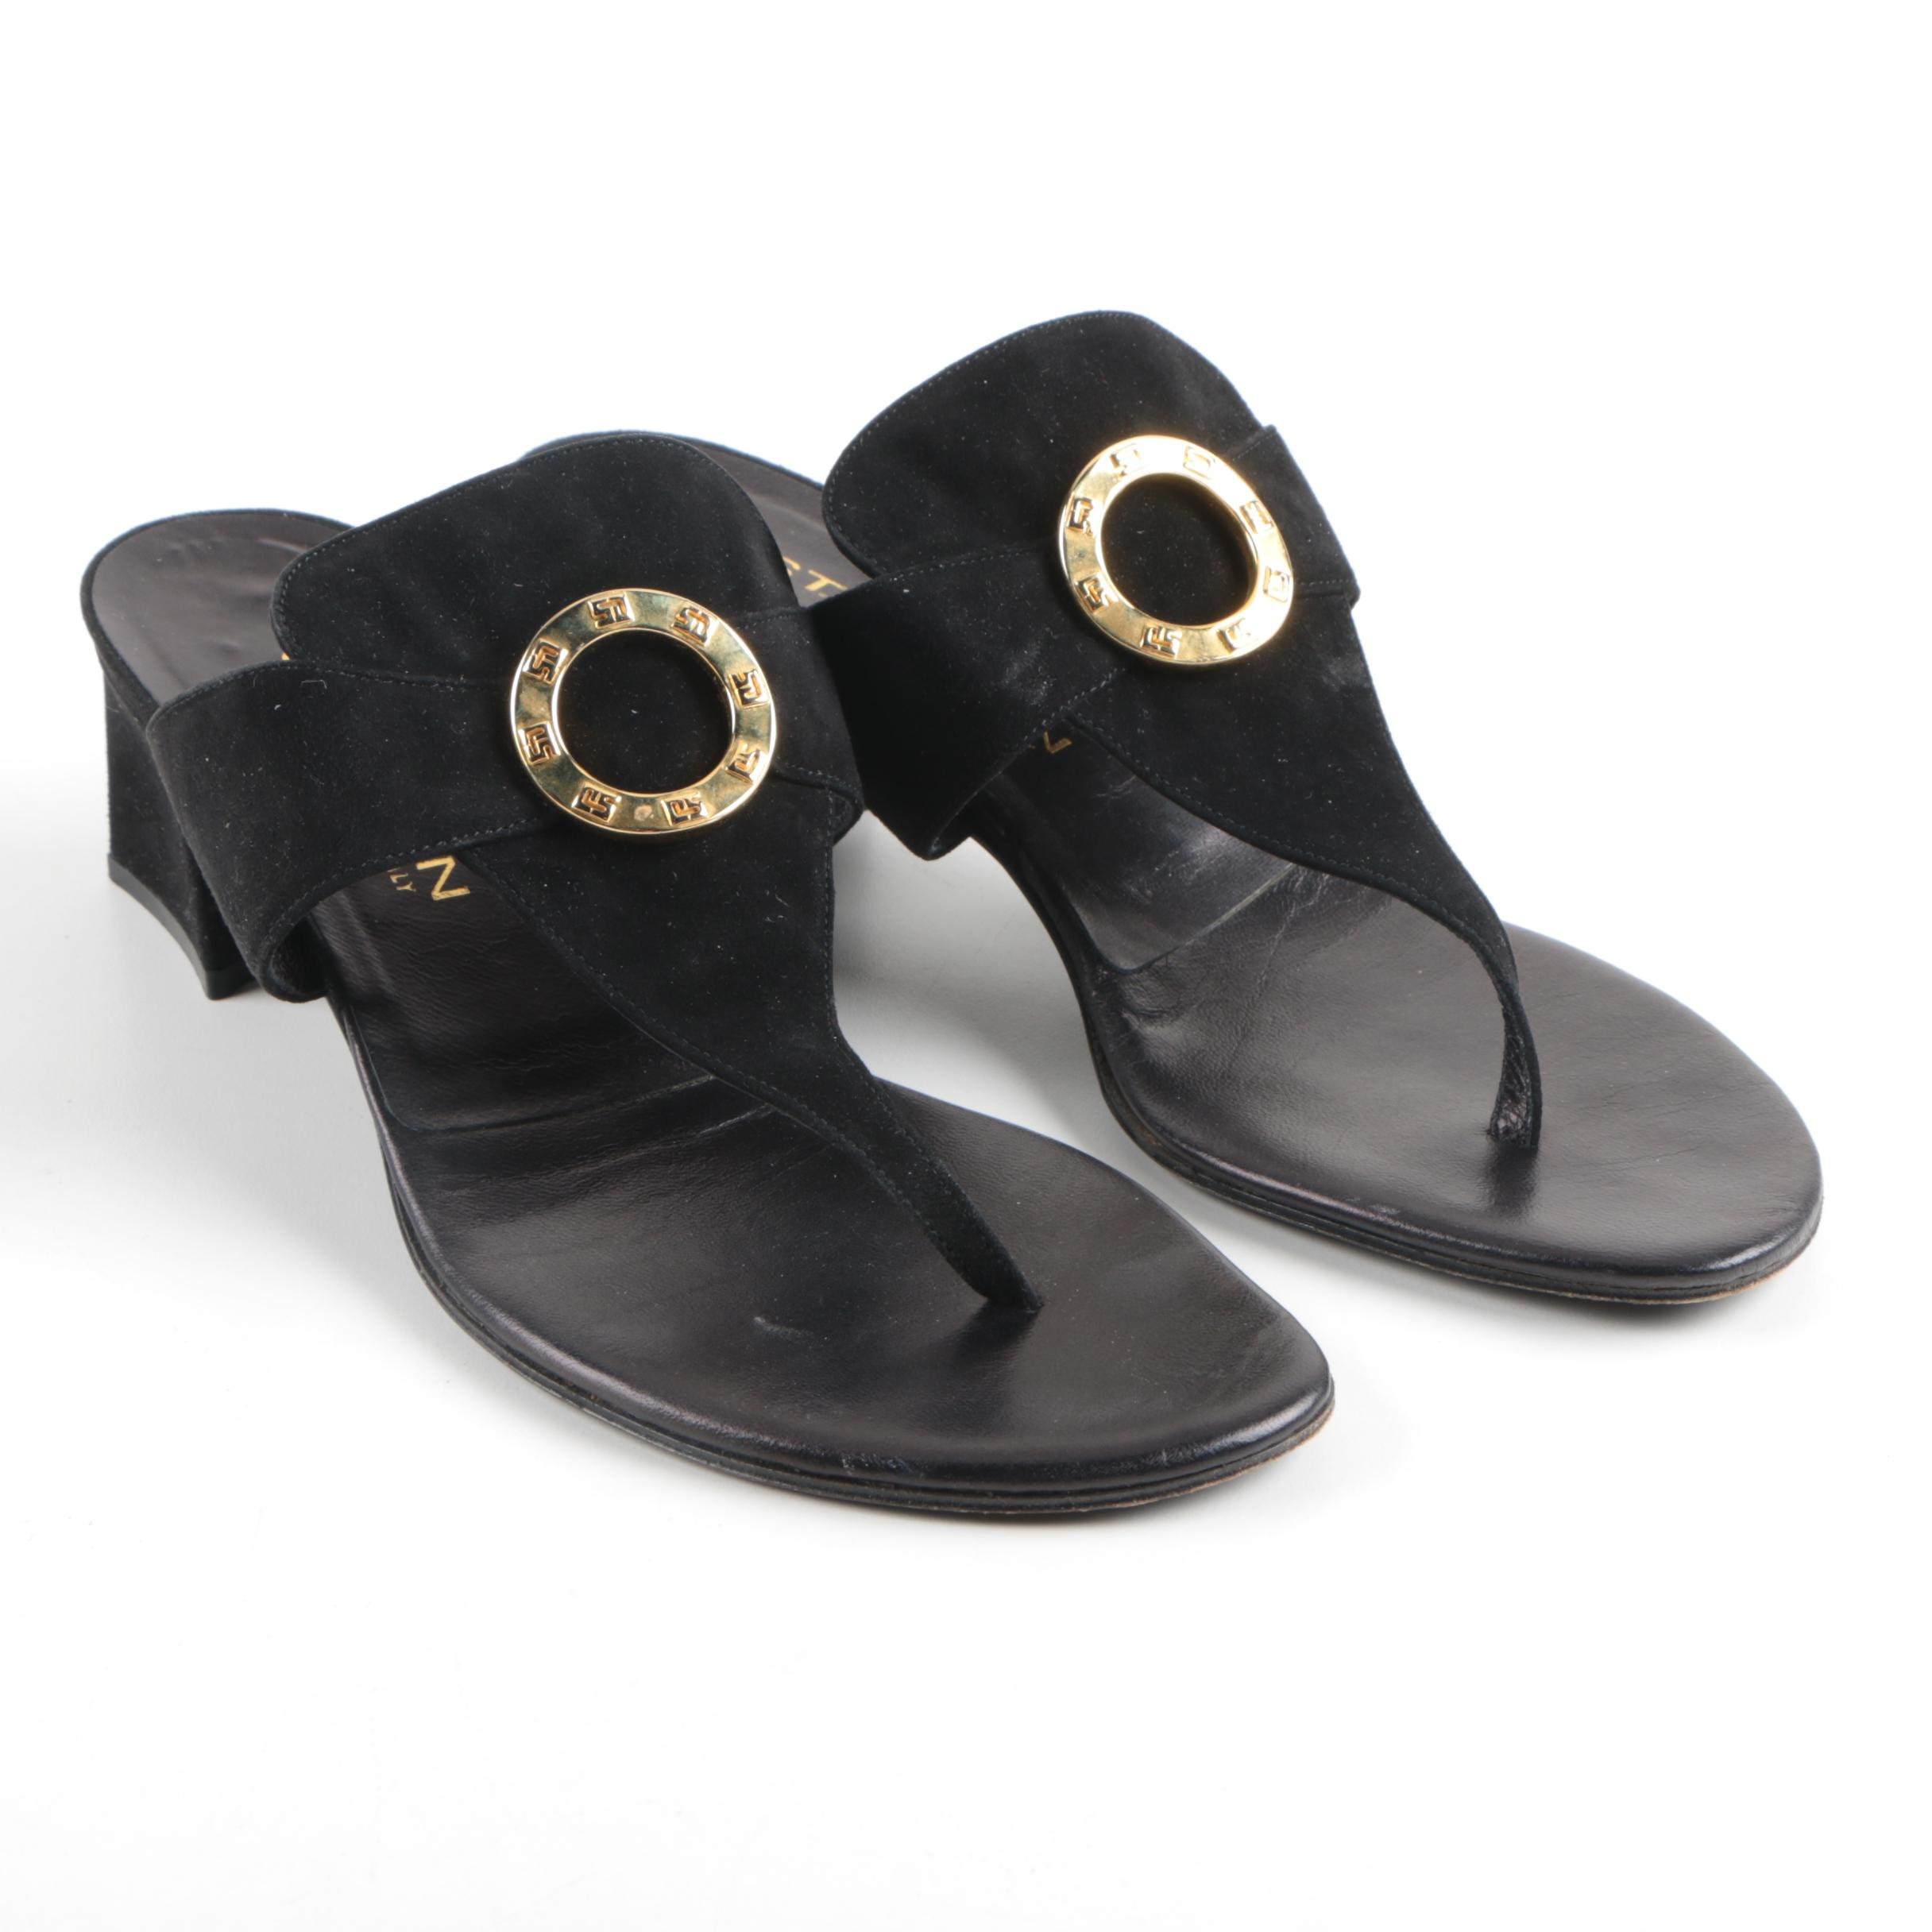 St. John Heeled Black Suede Sandals